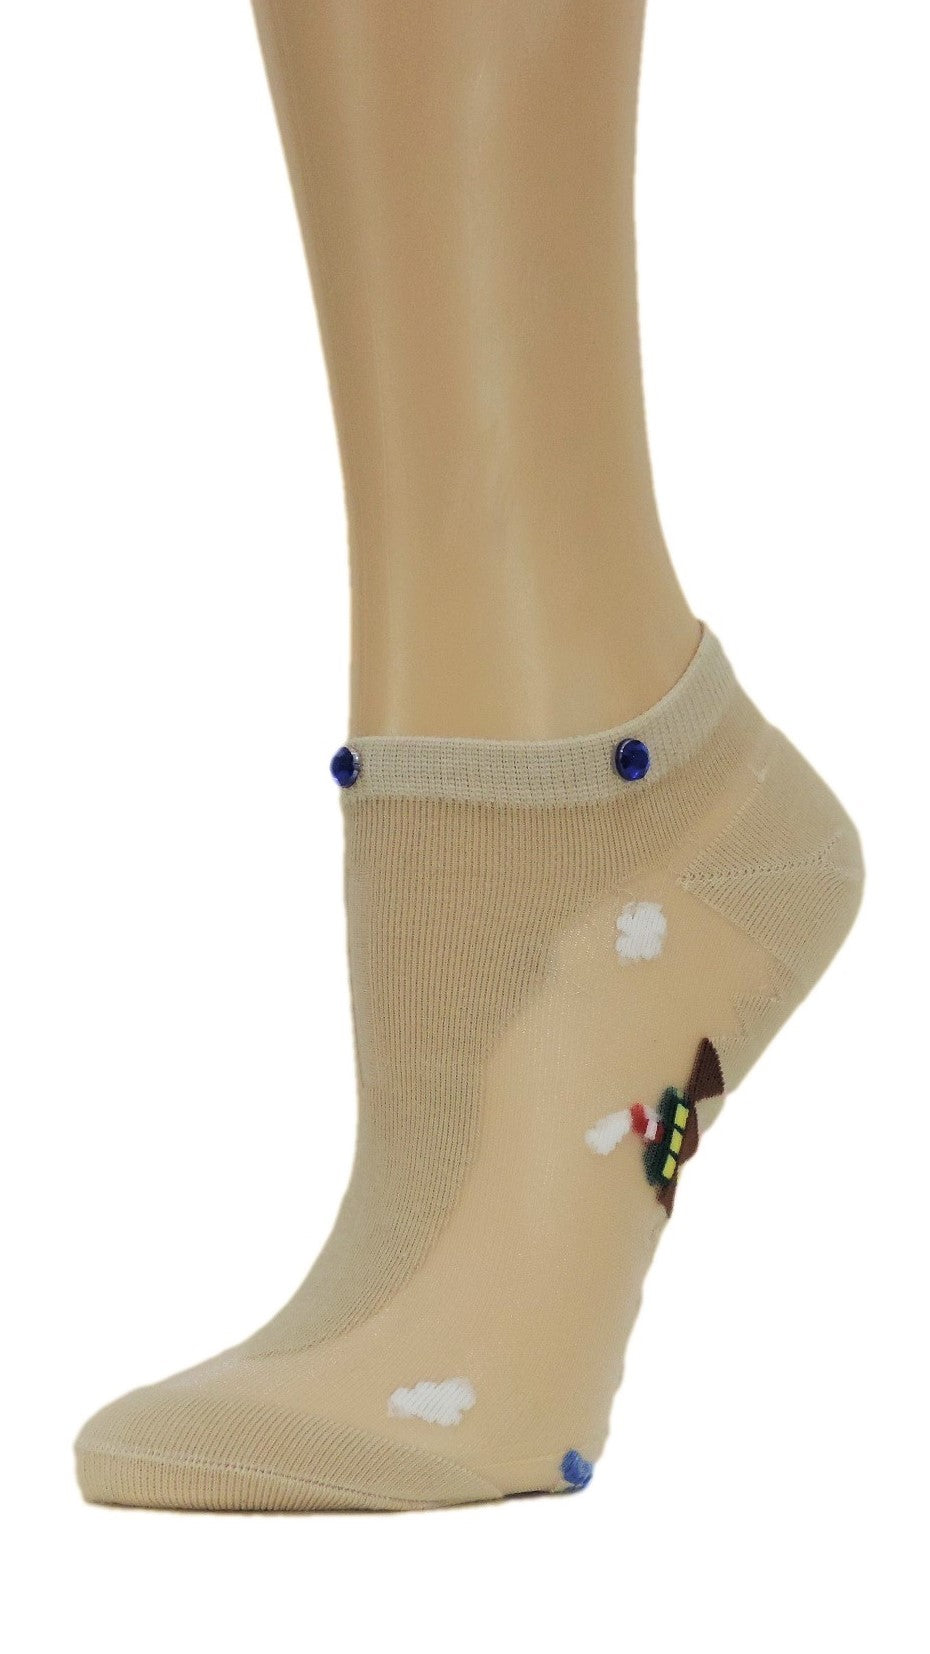 Pretty Custom Ankle Sheer Socks with beads - Global Trendz Fashion®